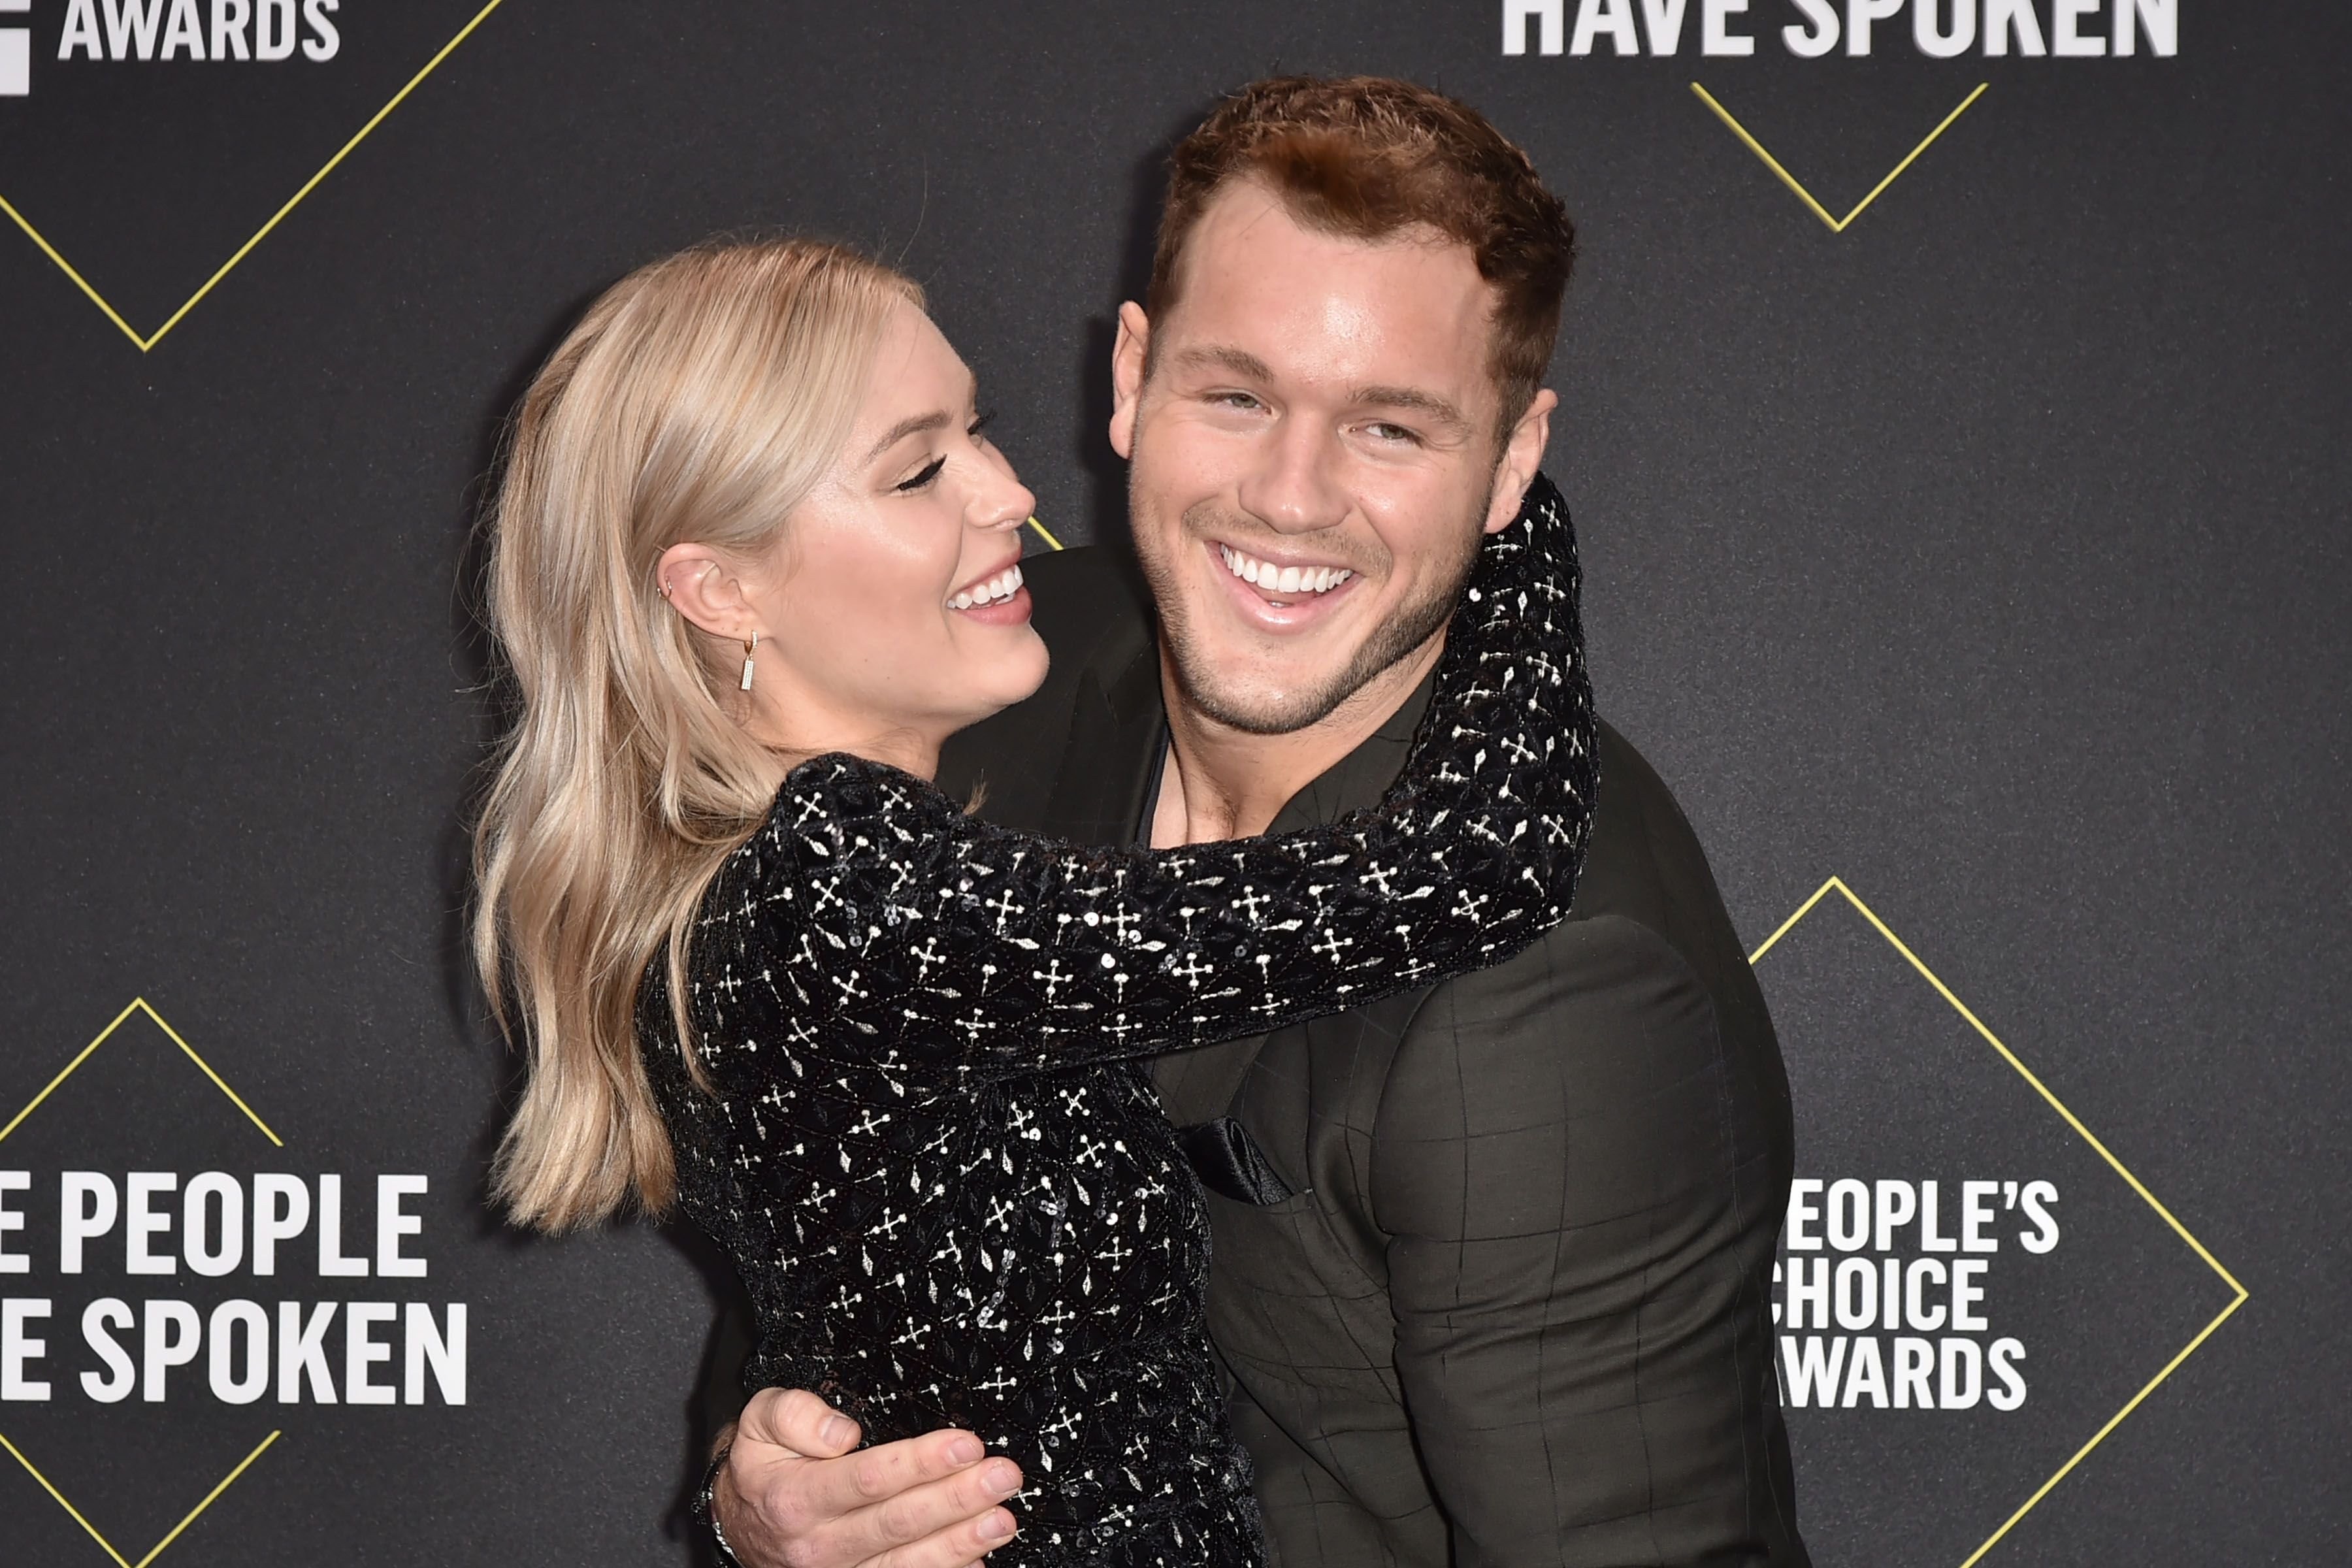 Cassie Randolph and Colton Underwood during E! People's Choice Awards 2018 - Arrivals at The Barker Hanger on November 10, 2019 in Santa Monica, California. | Source: Getty Images